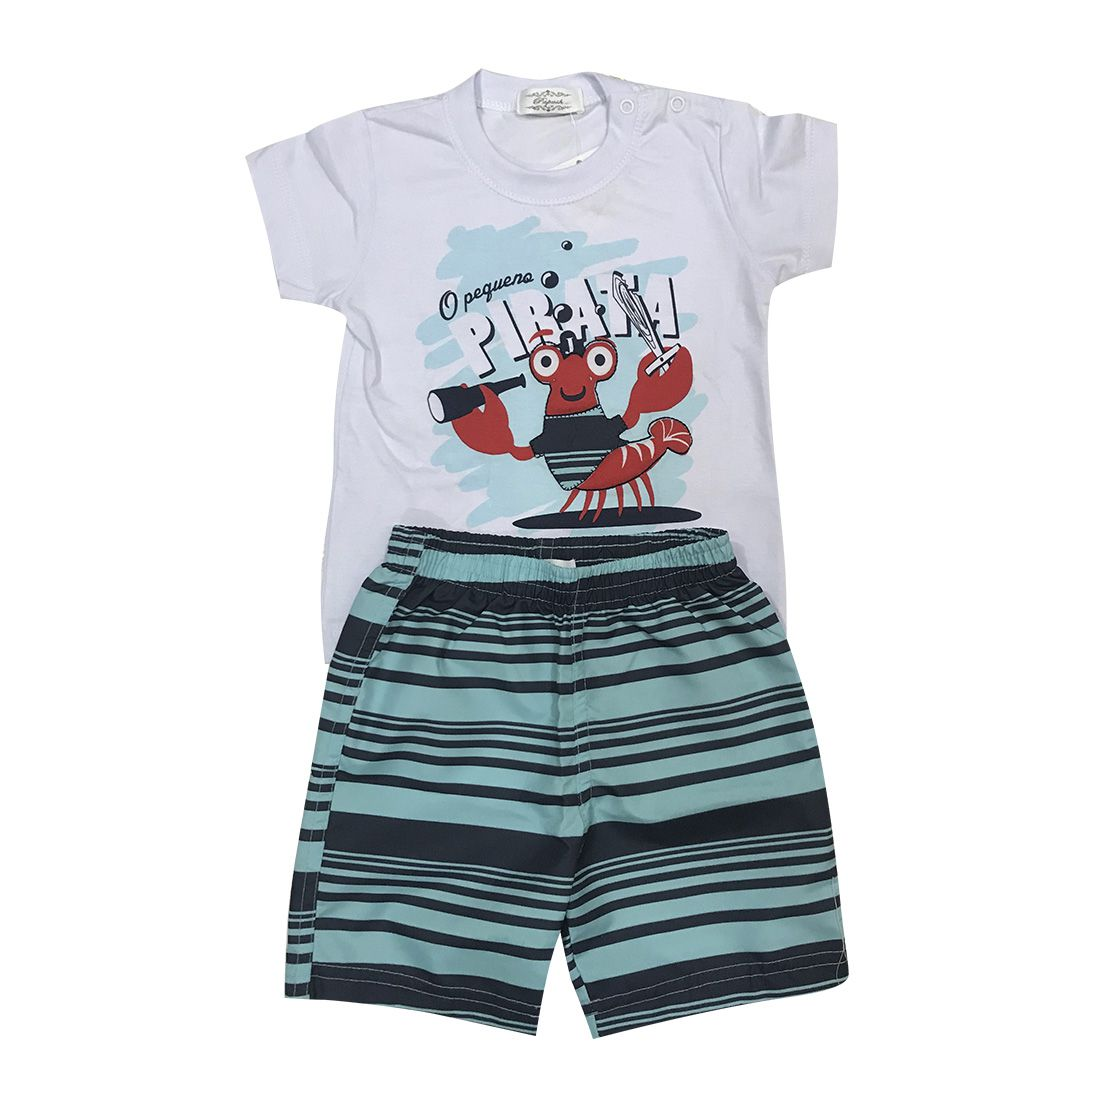 Conjunto Camiseta E Shorts O Pequeno Pirata